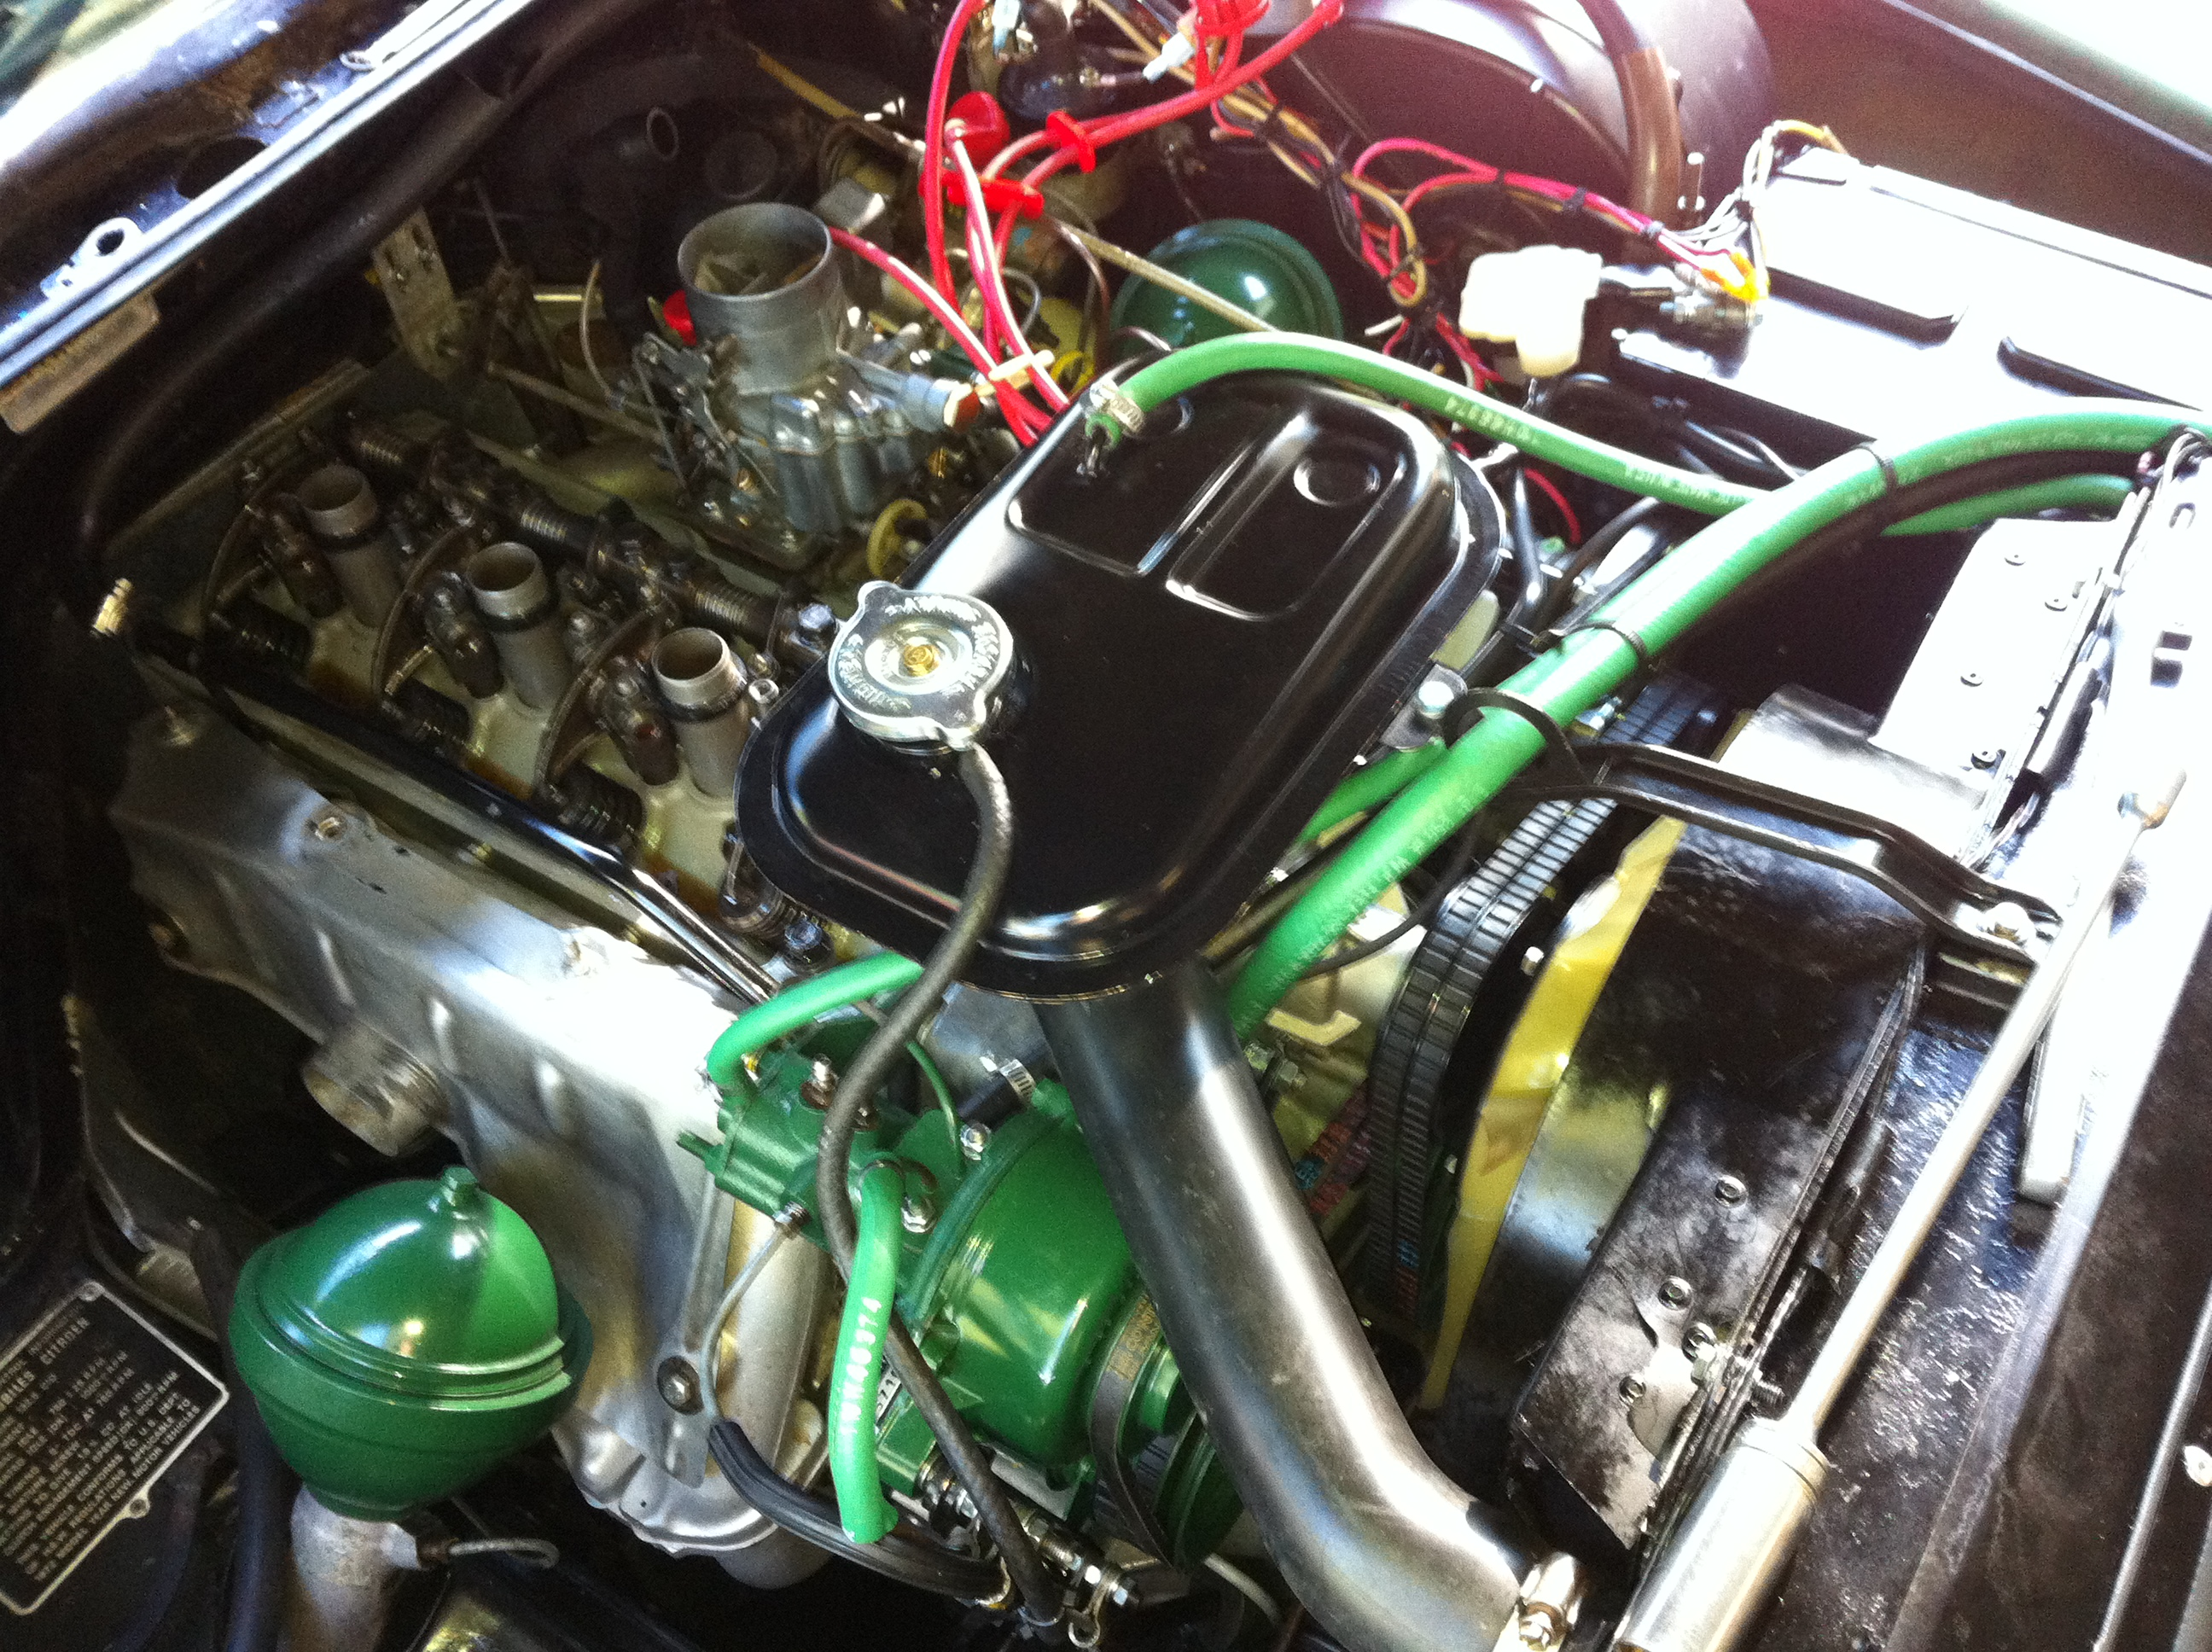 Another nice day, so I adjust the valves on the Citroen again to fix two of them that are still a bit sloppy.